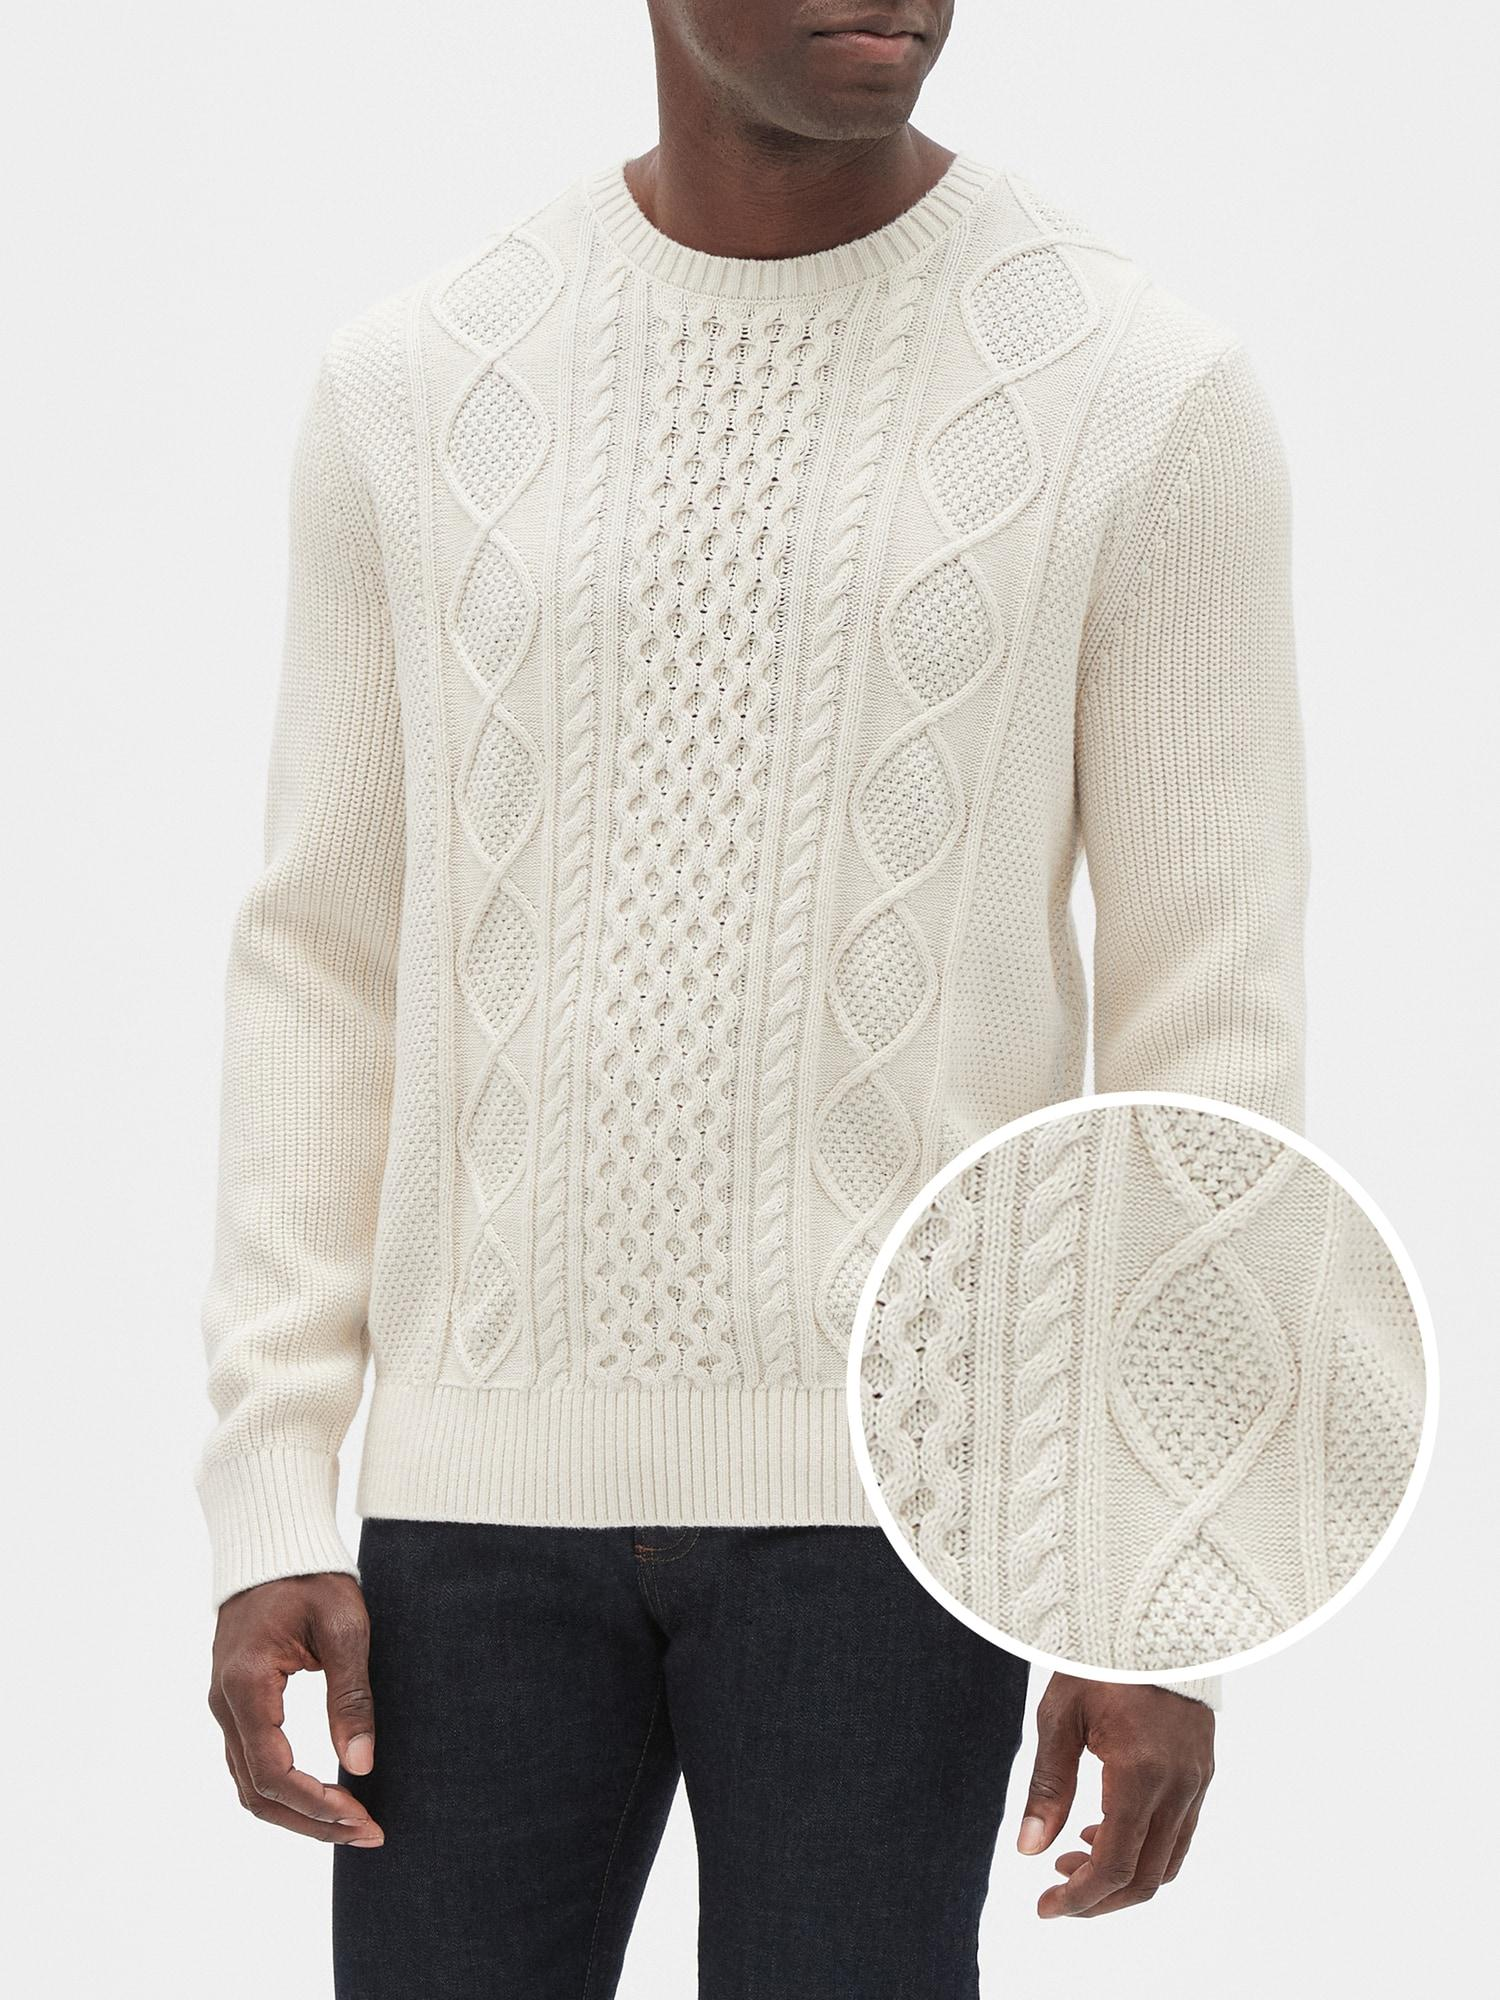 Lyst - GAP Factory Cable-knit Crewneck Pullover Sweater in White for Men 166f50836